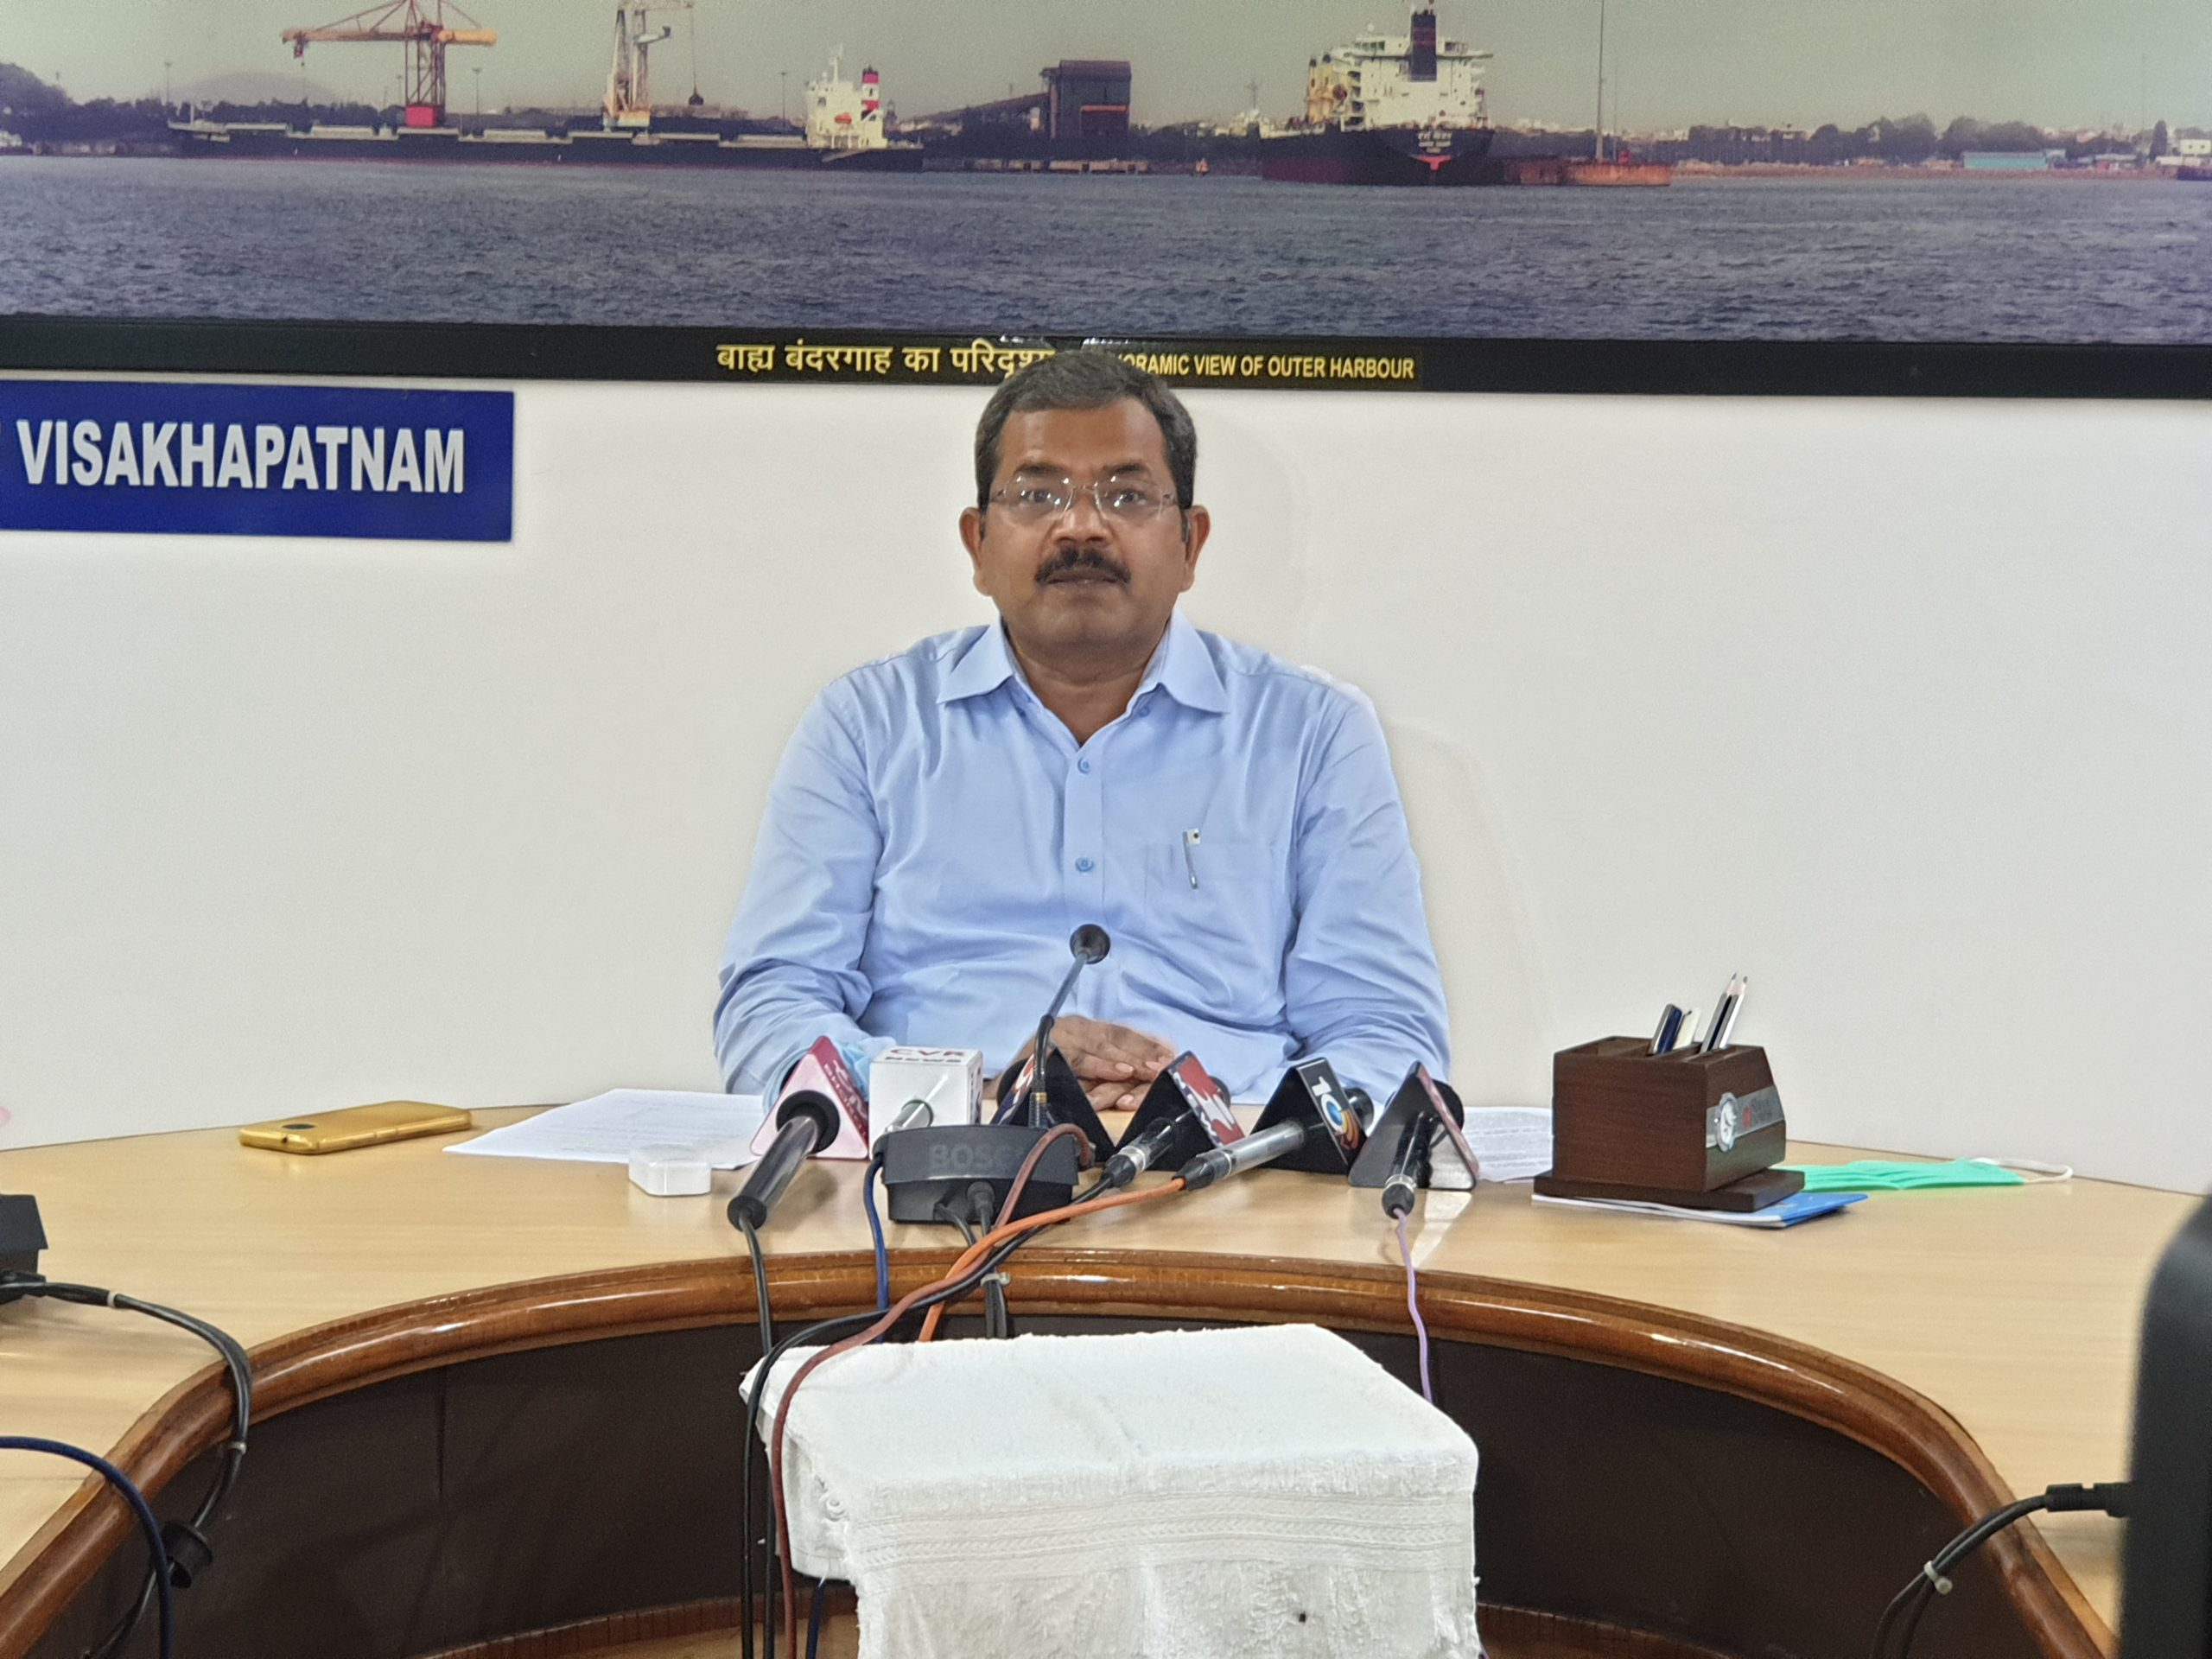 Chairman of Visakhapatnam Port Trust